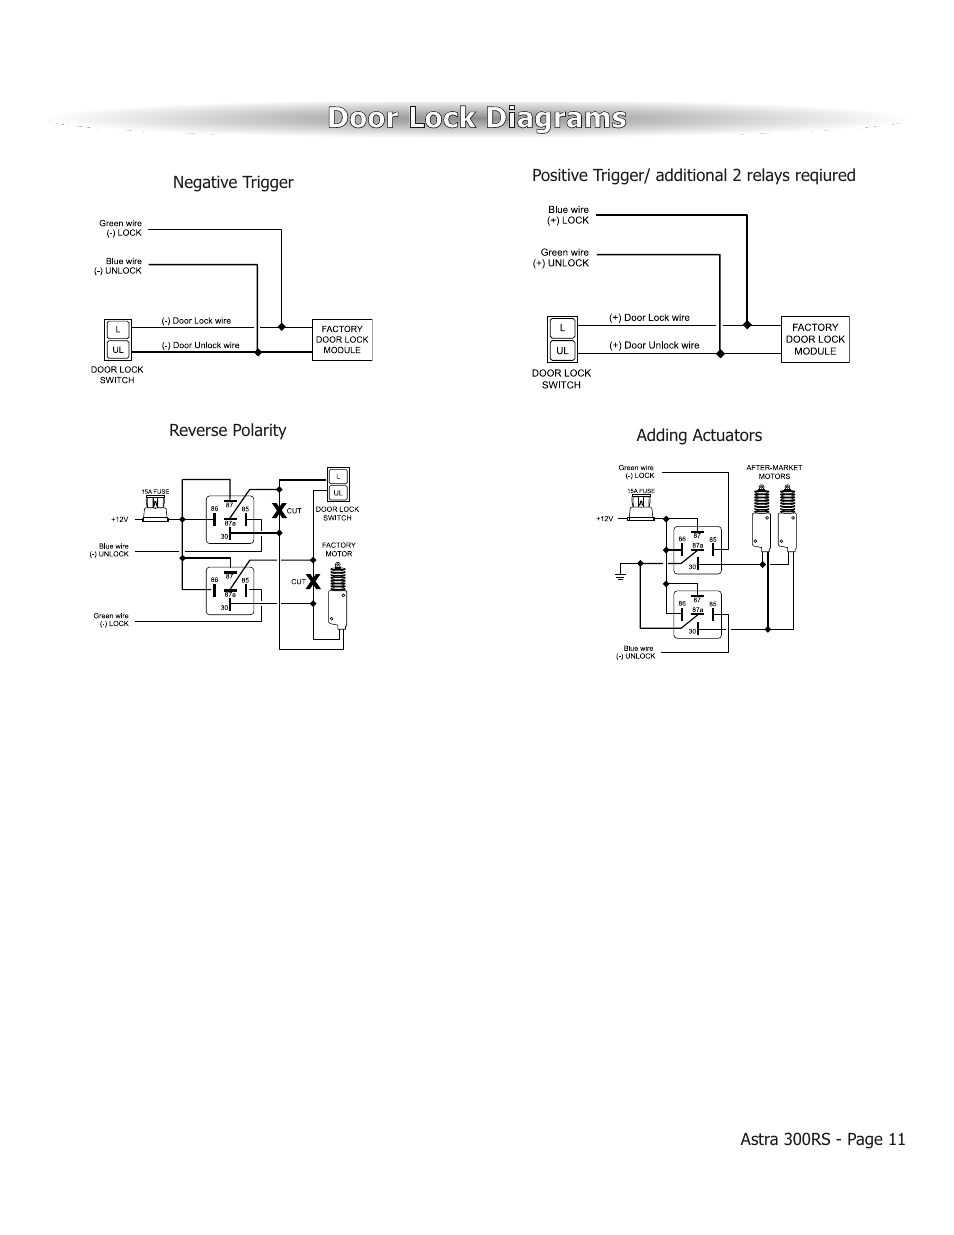 Door lock diagrams | ScyTek Electronics ASTRA 300RS User Manual | Page 11 /  12